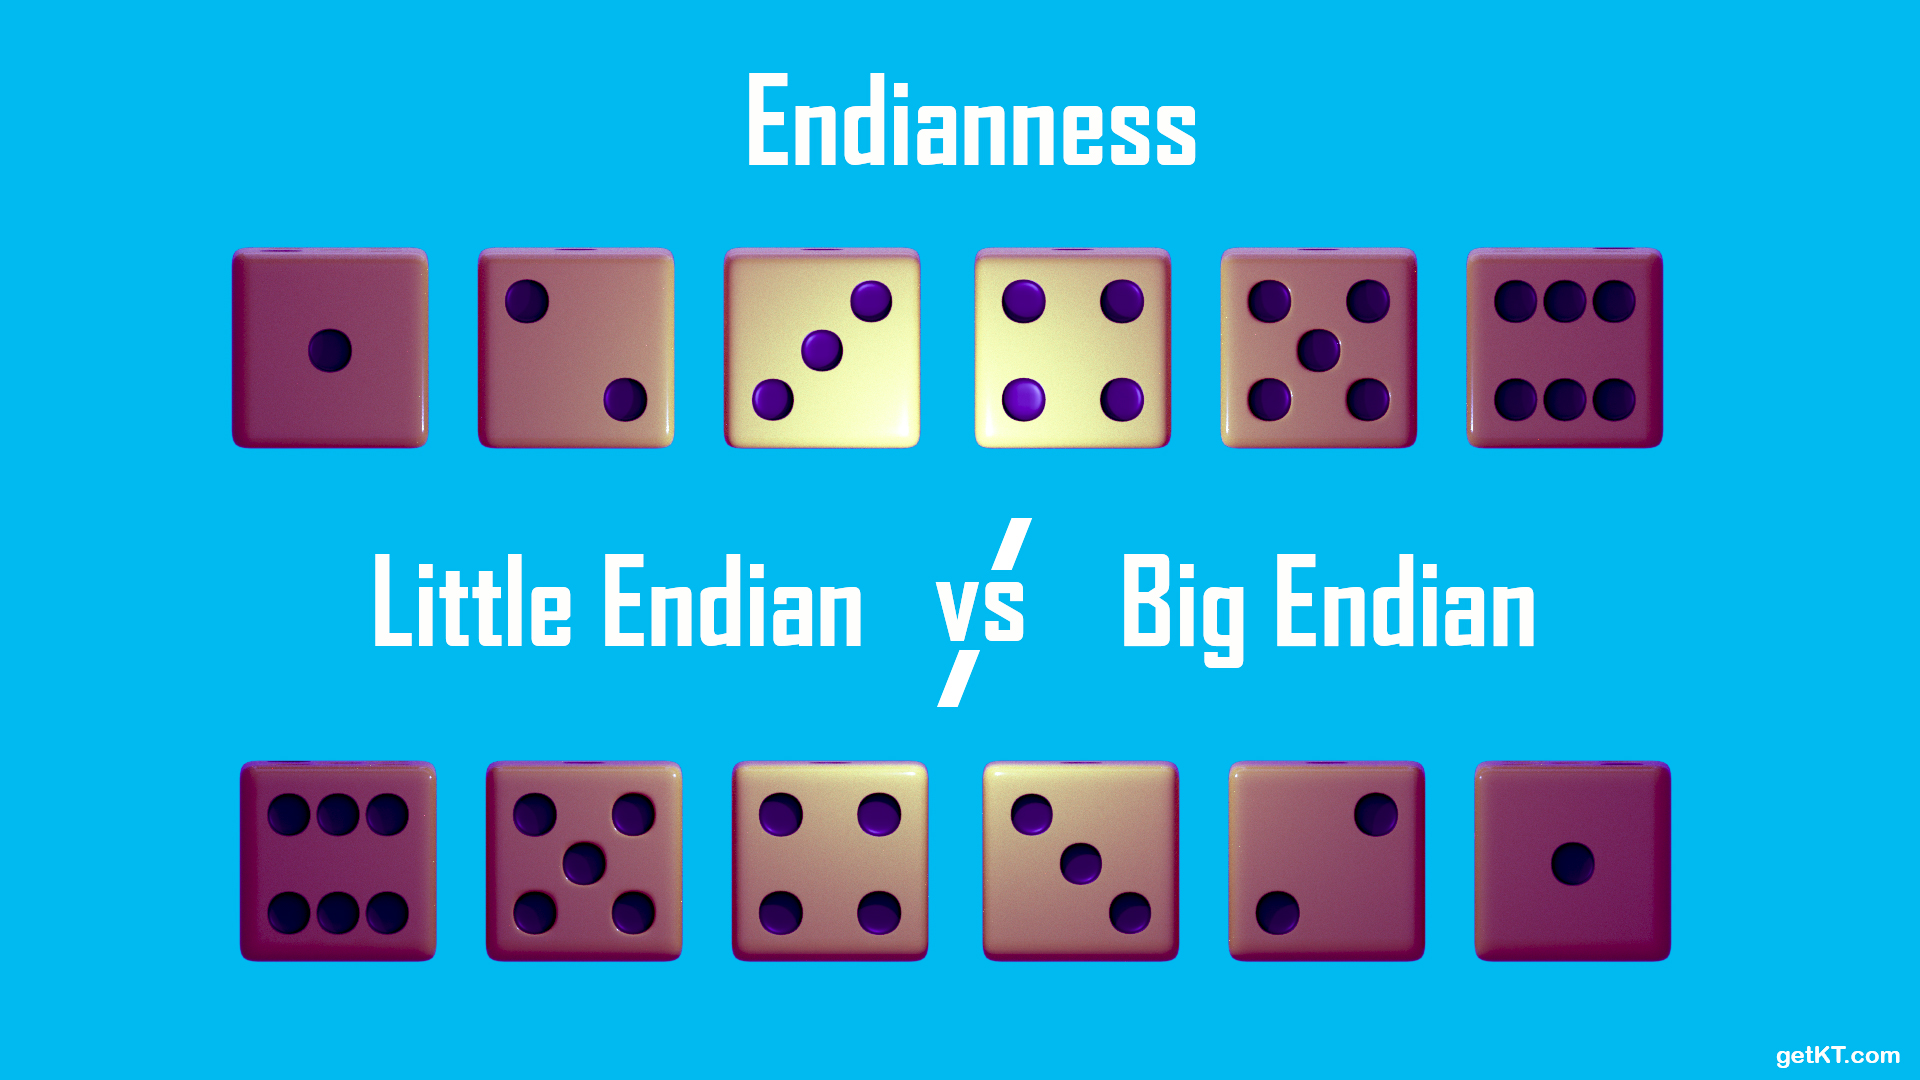 Endianness  Little Endian vs Big Endian | getKT